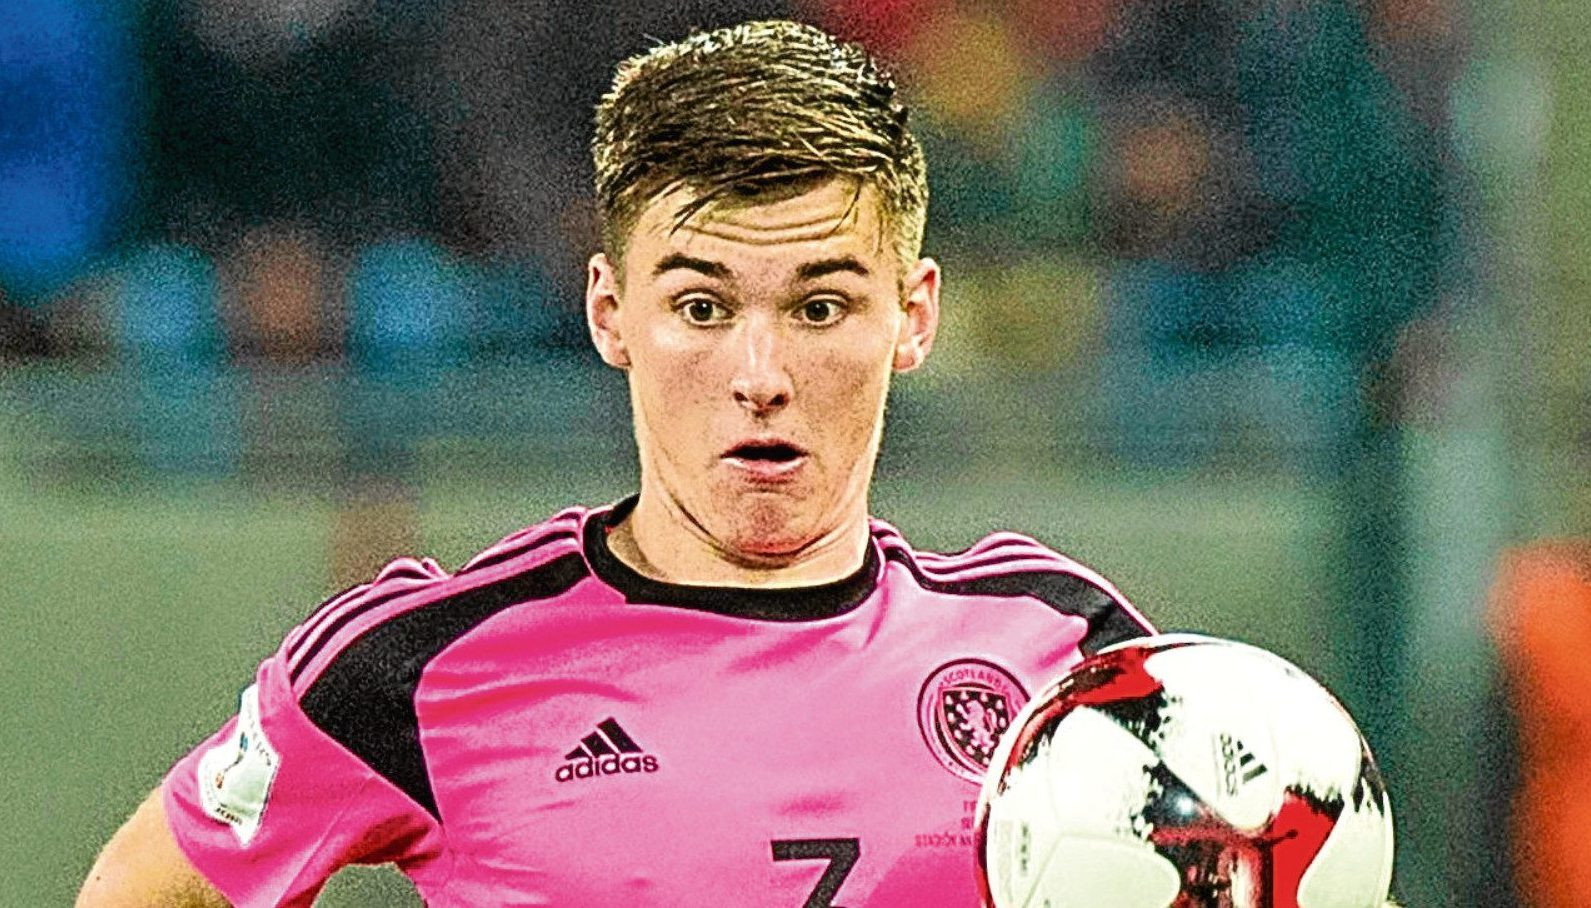 Wearing pink, as shown by full-back Kieran Tierney, contributed to our downfall on the pitch believes Jamie Buchan.